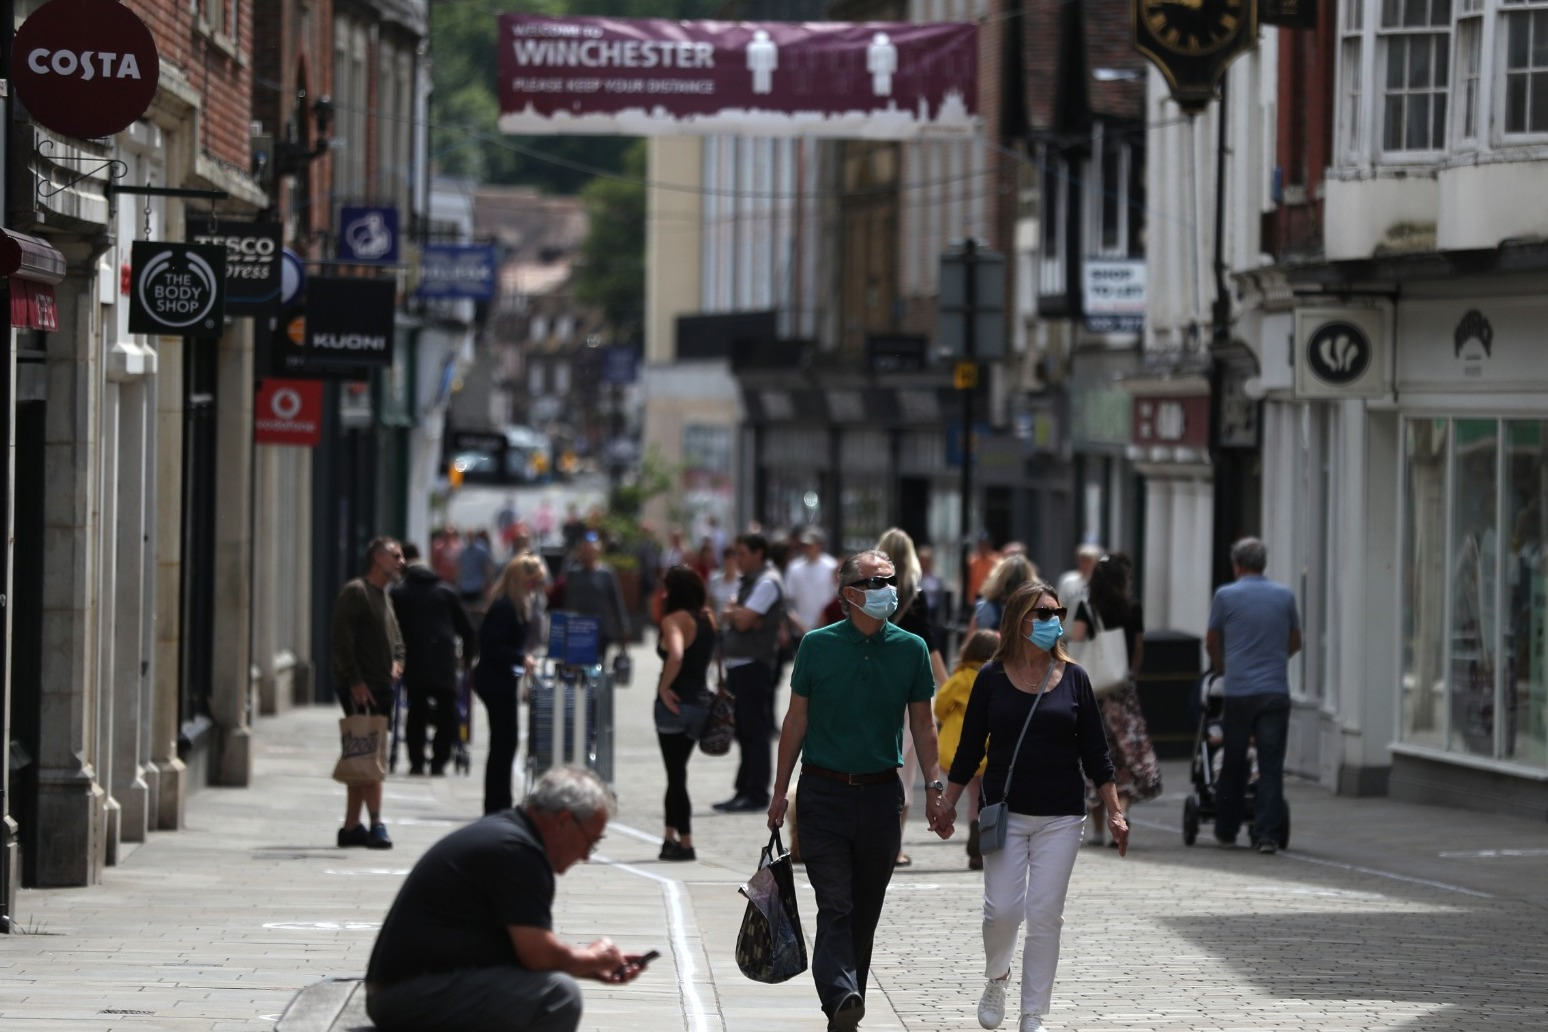 Retail footfall still lower in June despite reopening 'turning point'